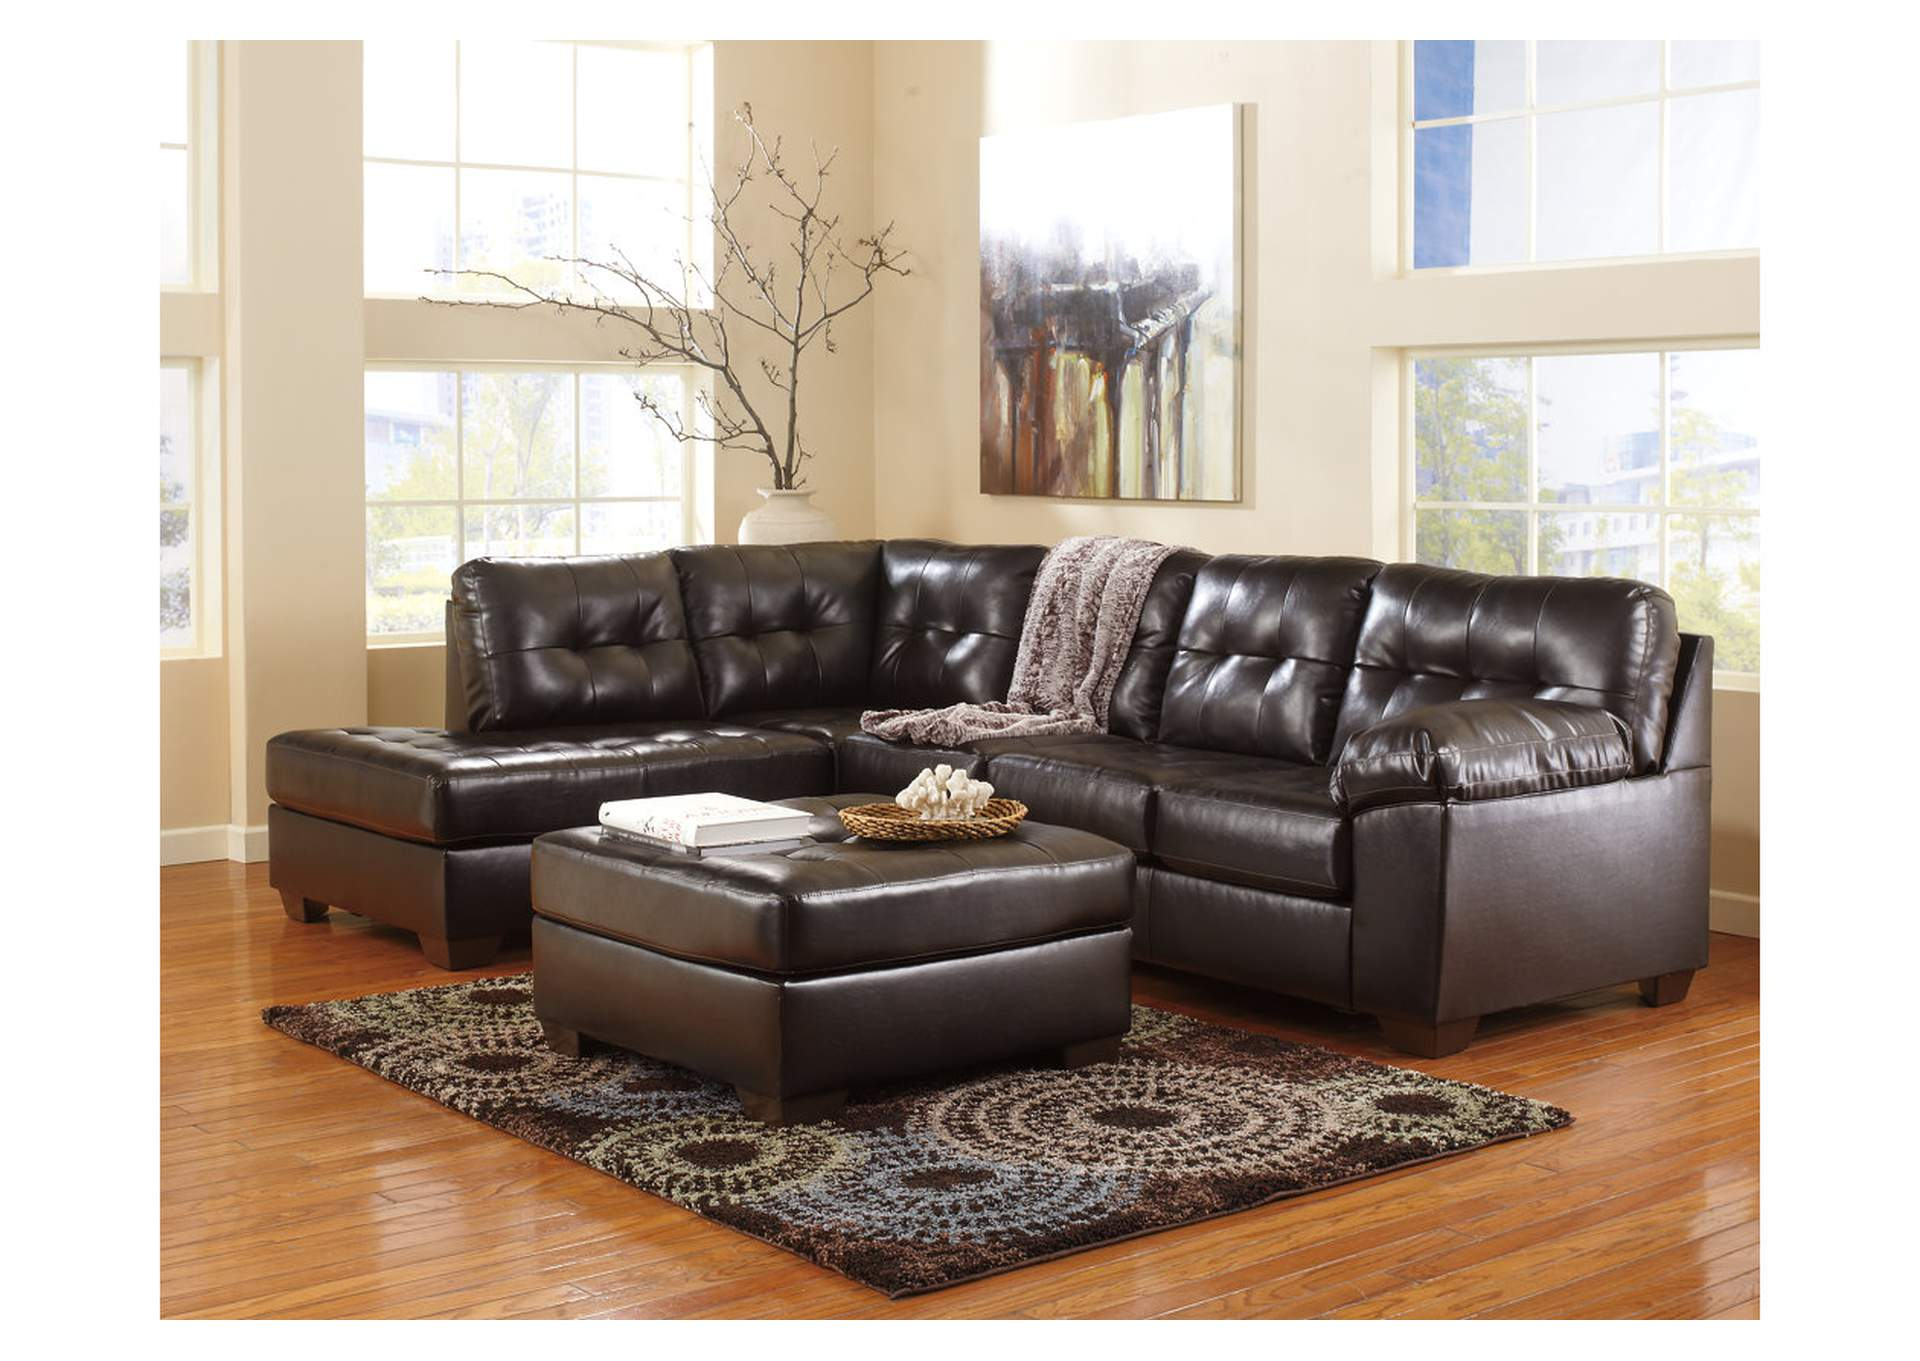 Alliston DuraBlend Chocolate Left Facing Chaise End Sectional & Oversized Accent Ottoman,Signature Design By Ashley